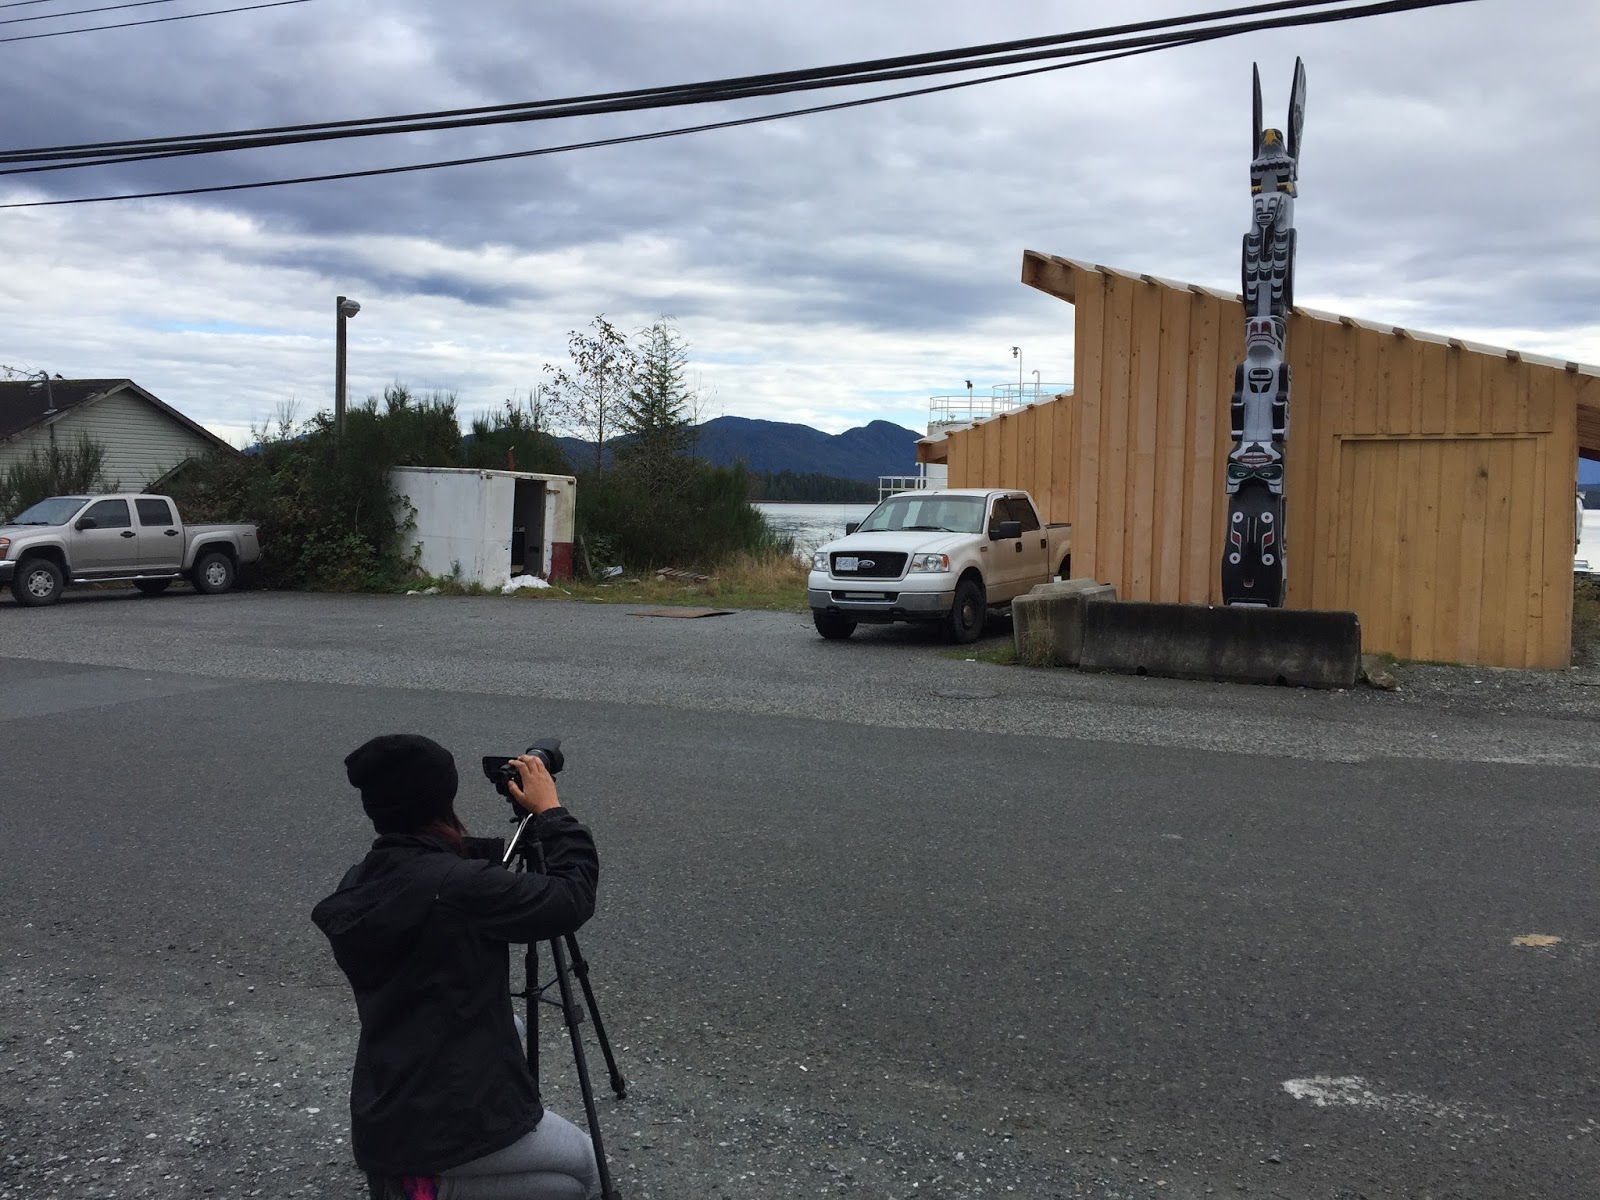 Nadia practices camera moves to capture another totem pole by the store